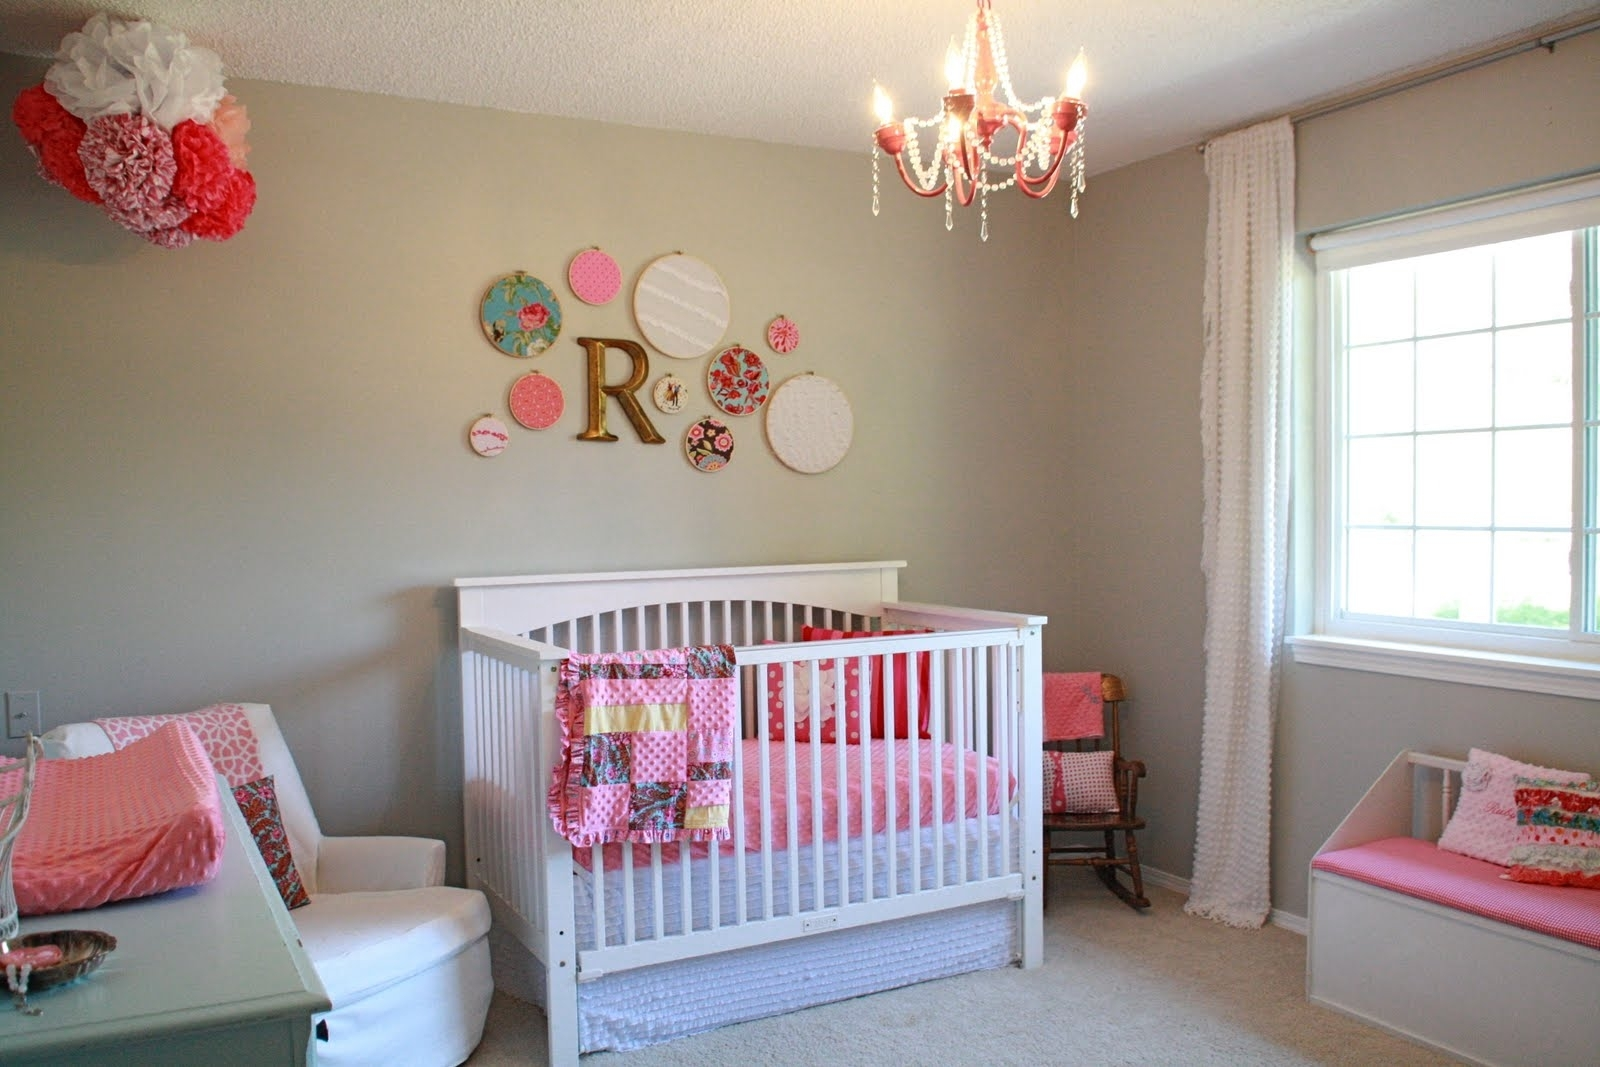 Vintage Baby Nursery Room Themed Feat Decorative Wall Accessories intended for Most Recently Released Girl Nursery Wall Accents